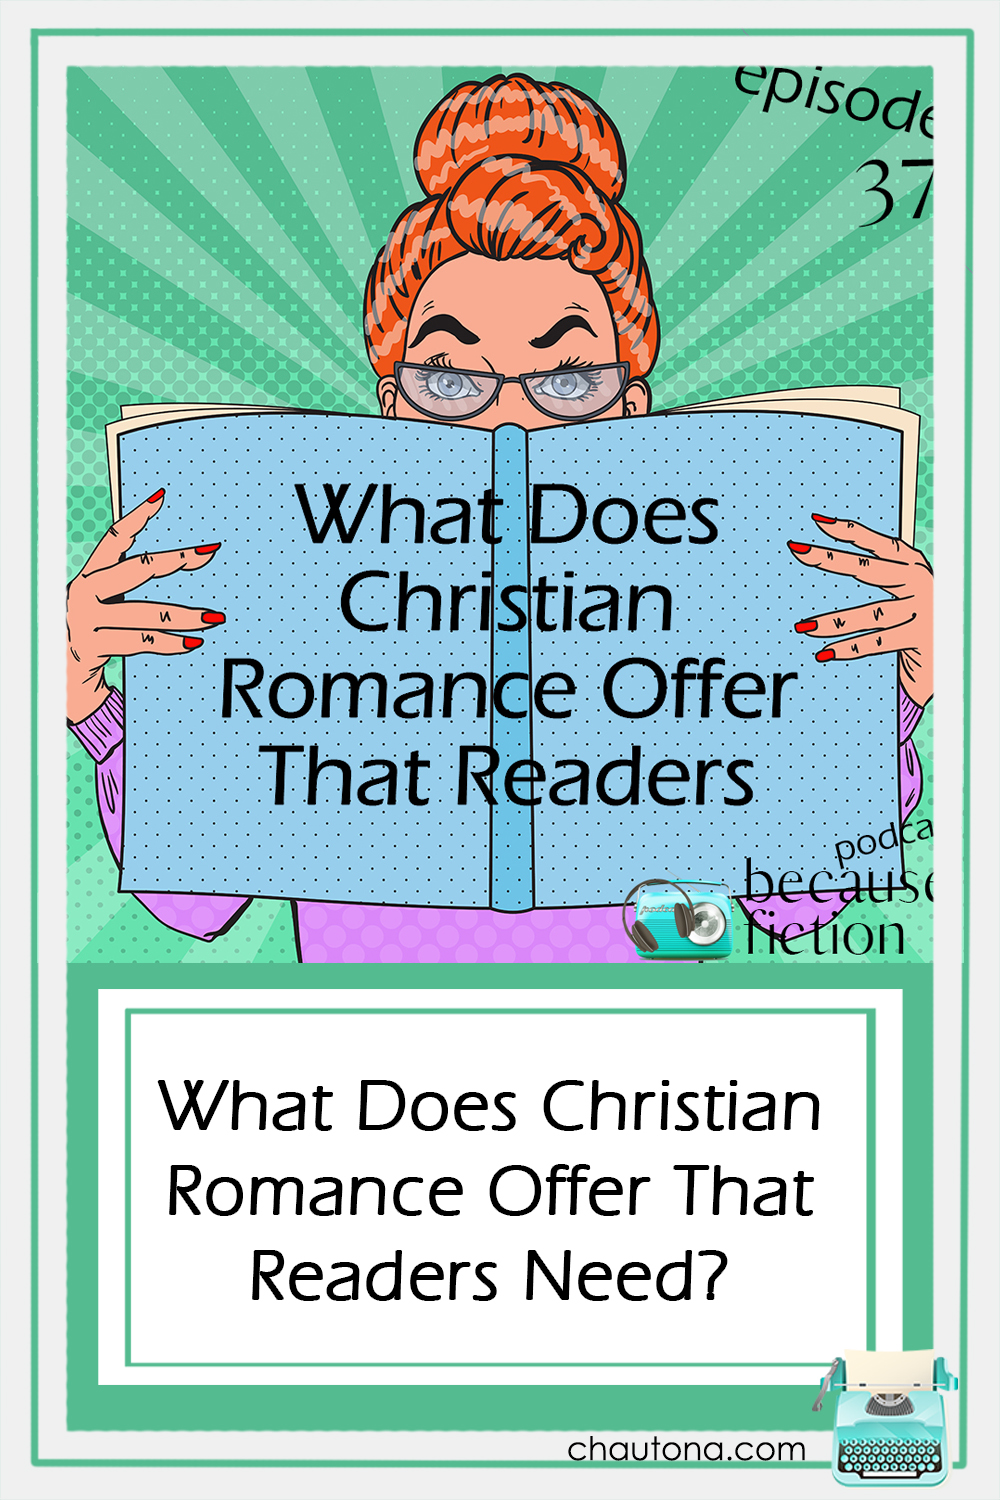 What Does Christiian Romance Offer That Readers Need?